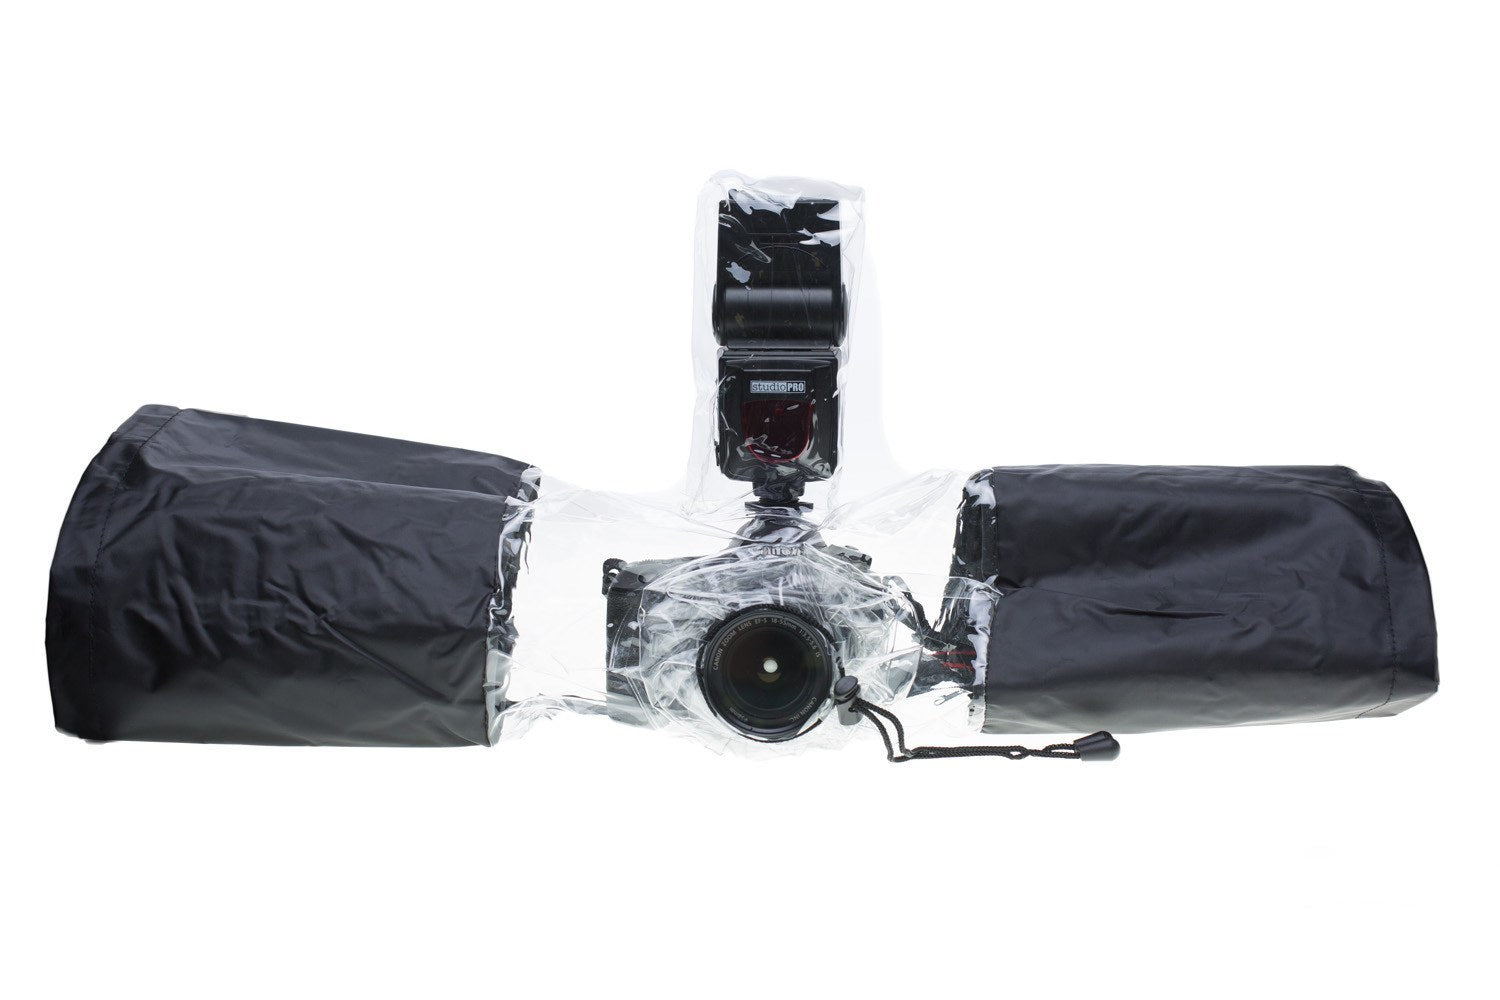 StudioPRO Professional Rain Cover for Large DSLR Camera Universal Fit -  - 6